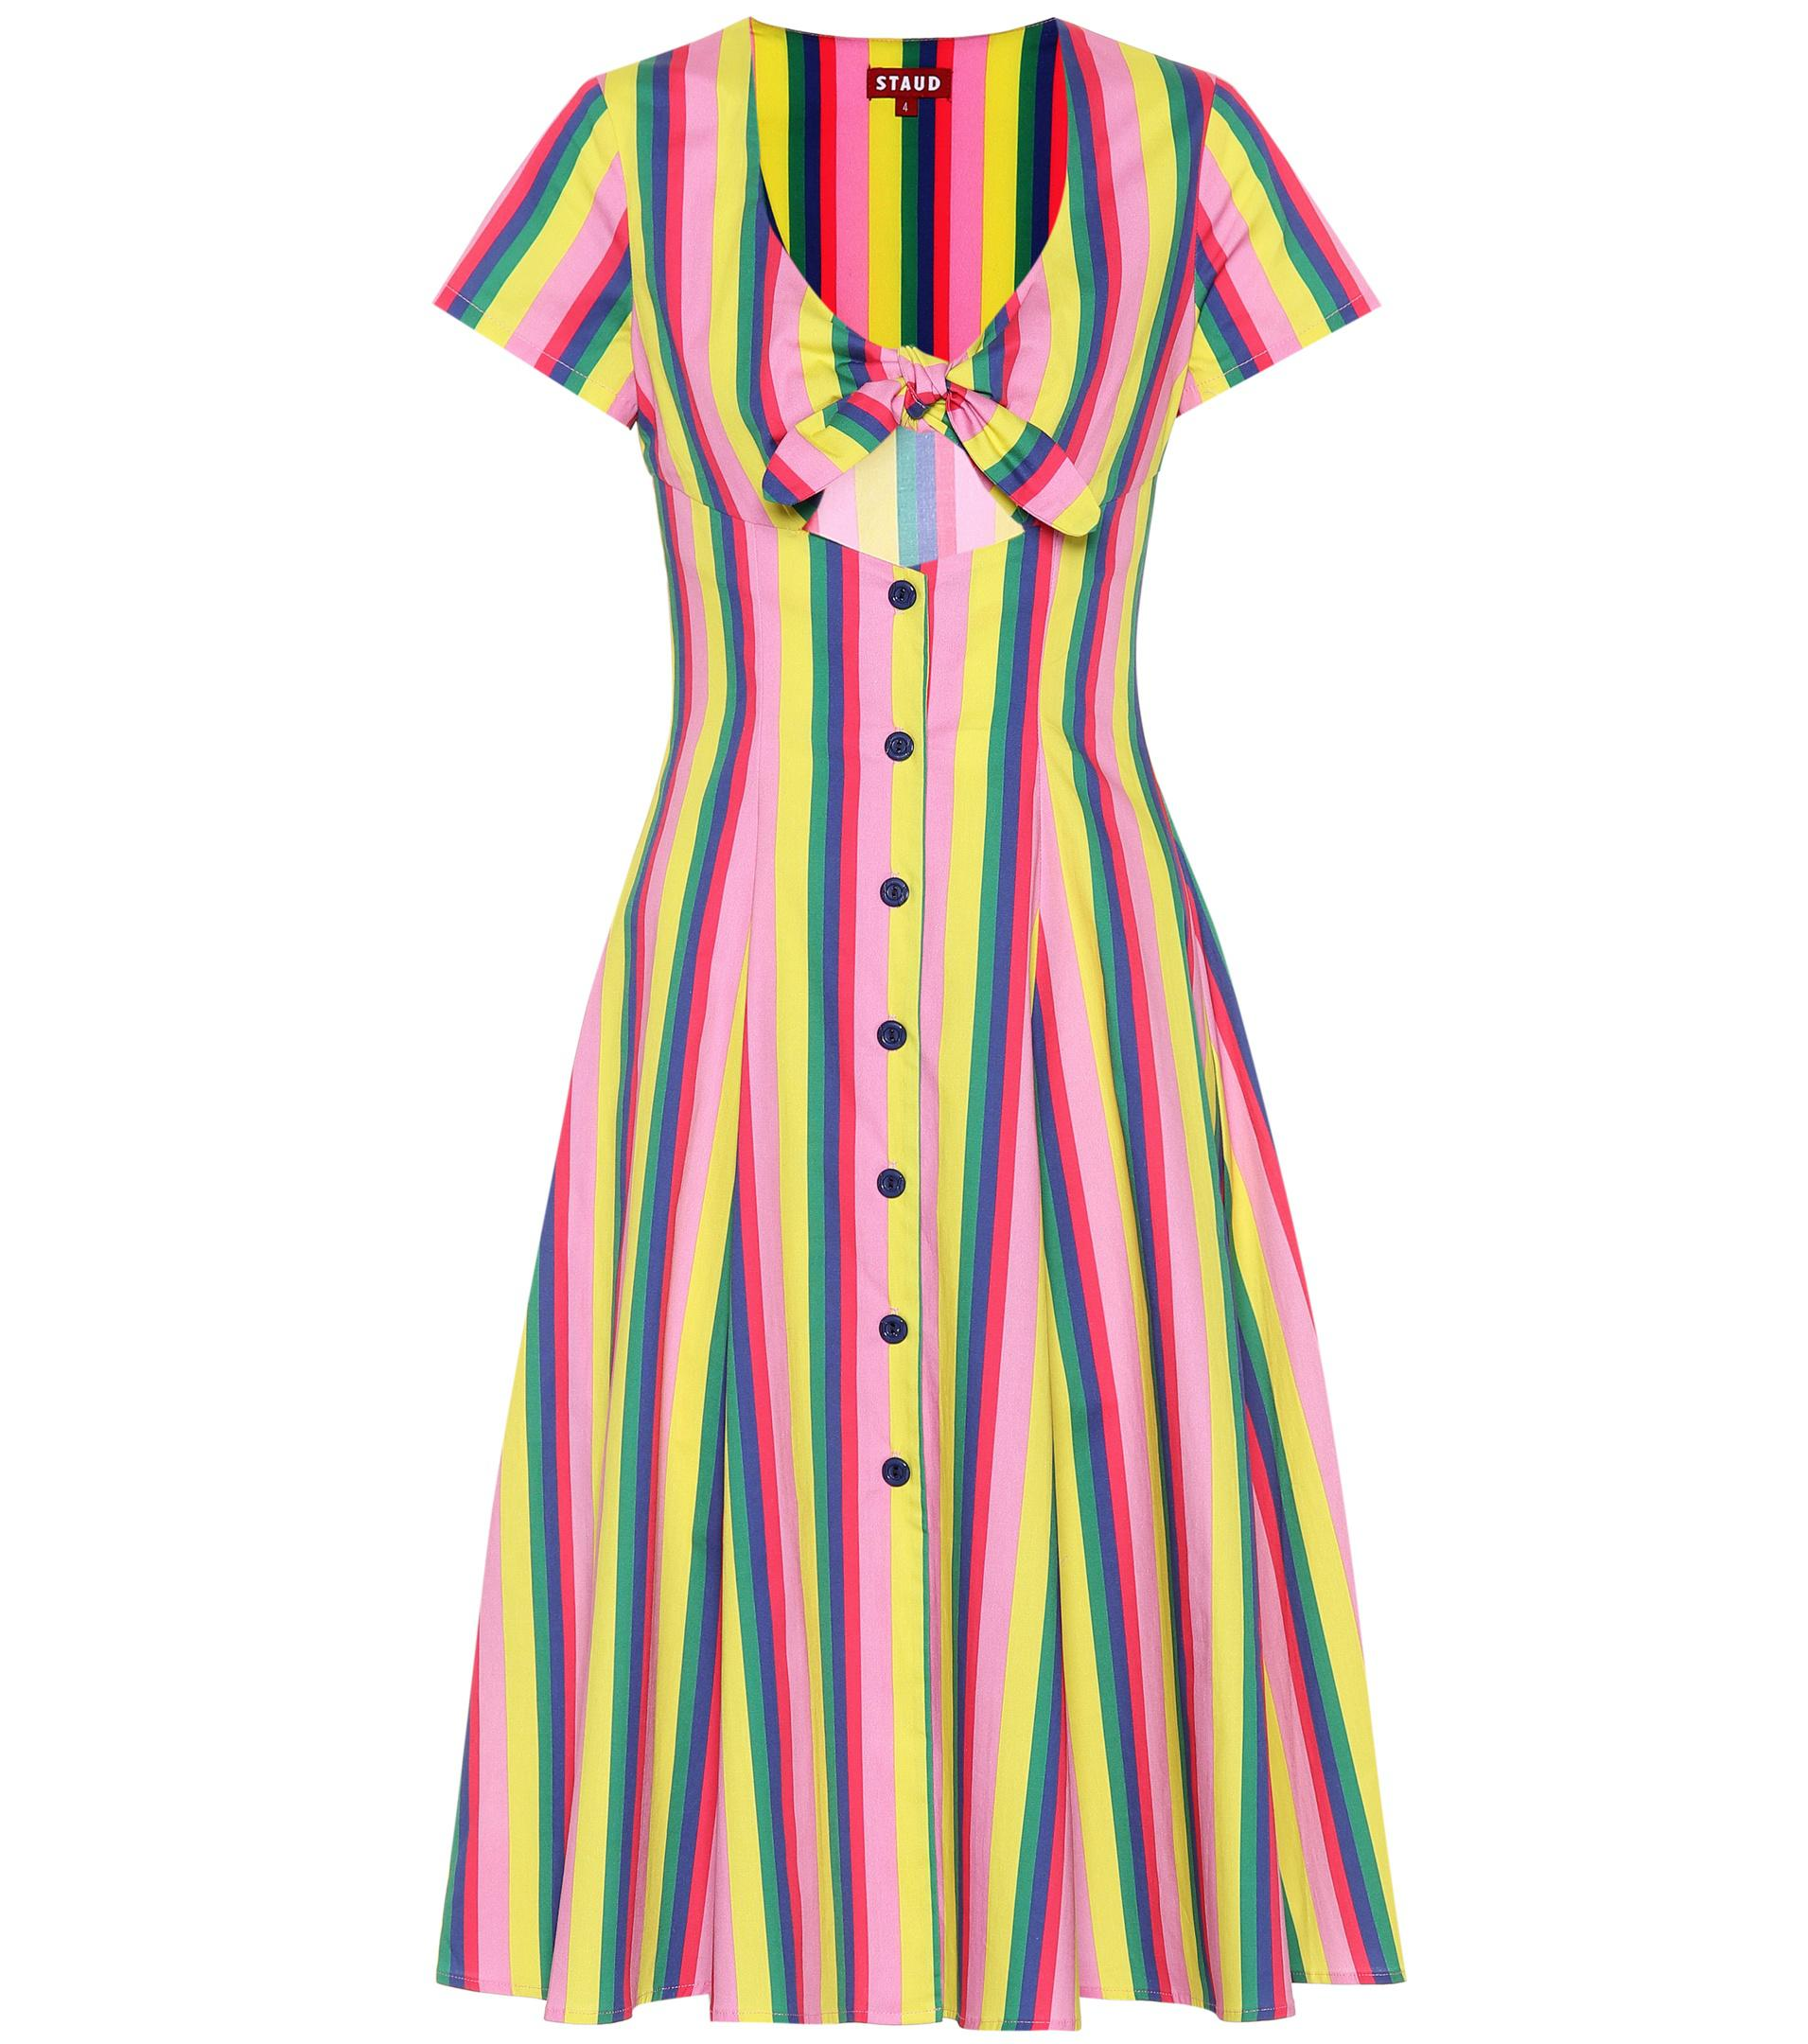 Top Quality Cheap Price alice stripe dress - Multicolour Staud Buy Cheap Inexpensive Nicekicks Sale Online Free Shipping Best Place pS69hEbOH